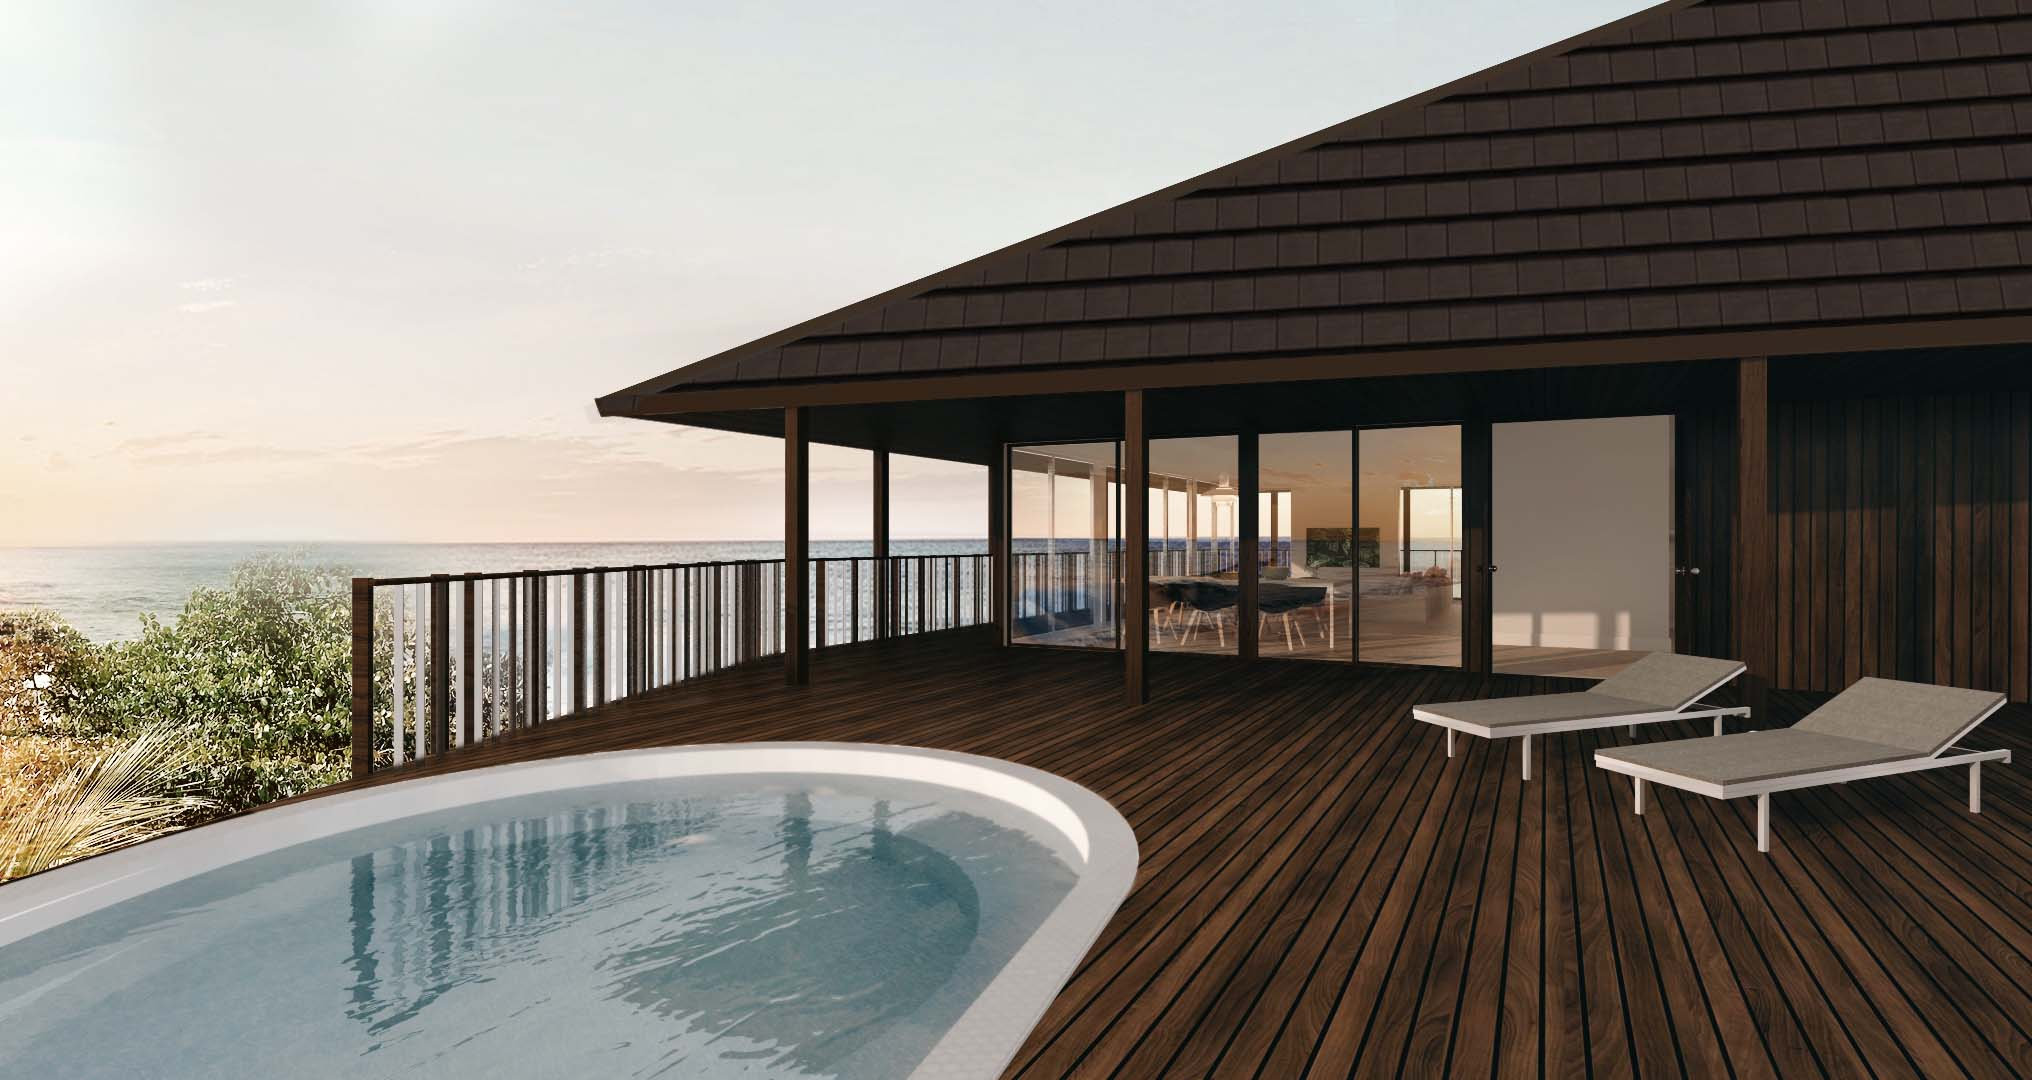 Beach House Fuster Architects Puerto Rico.jpg